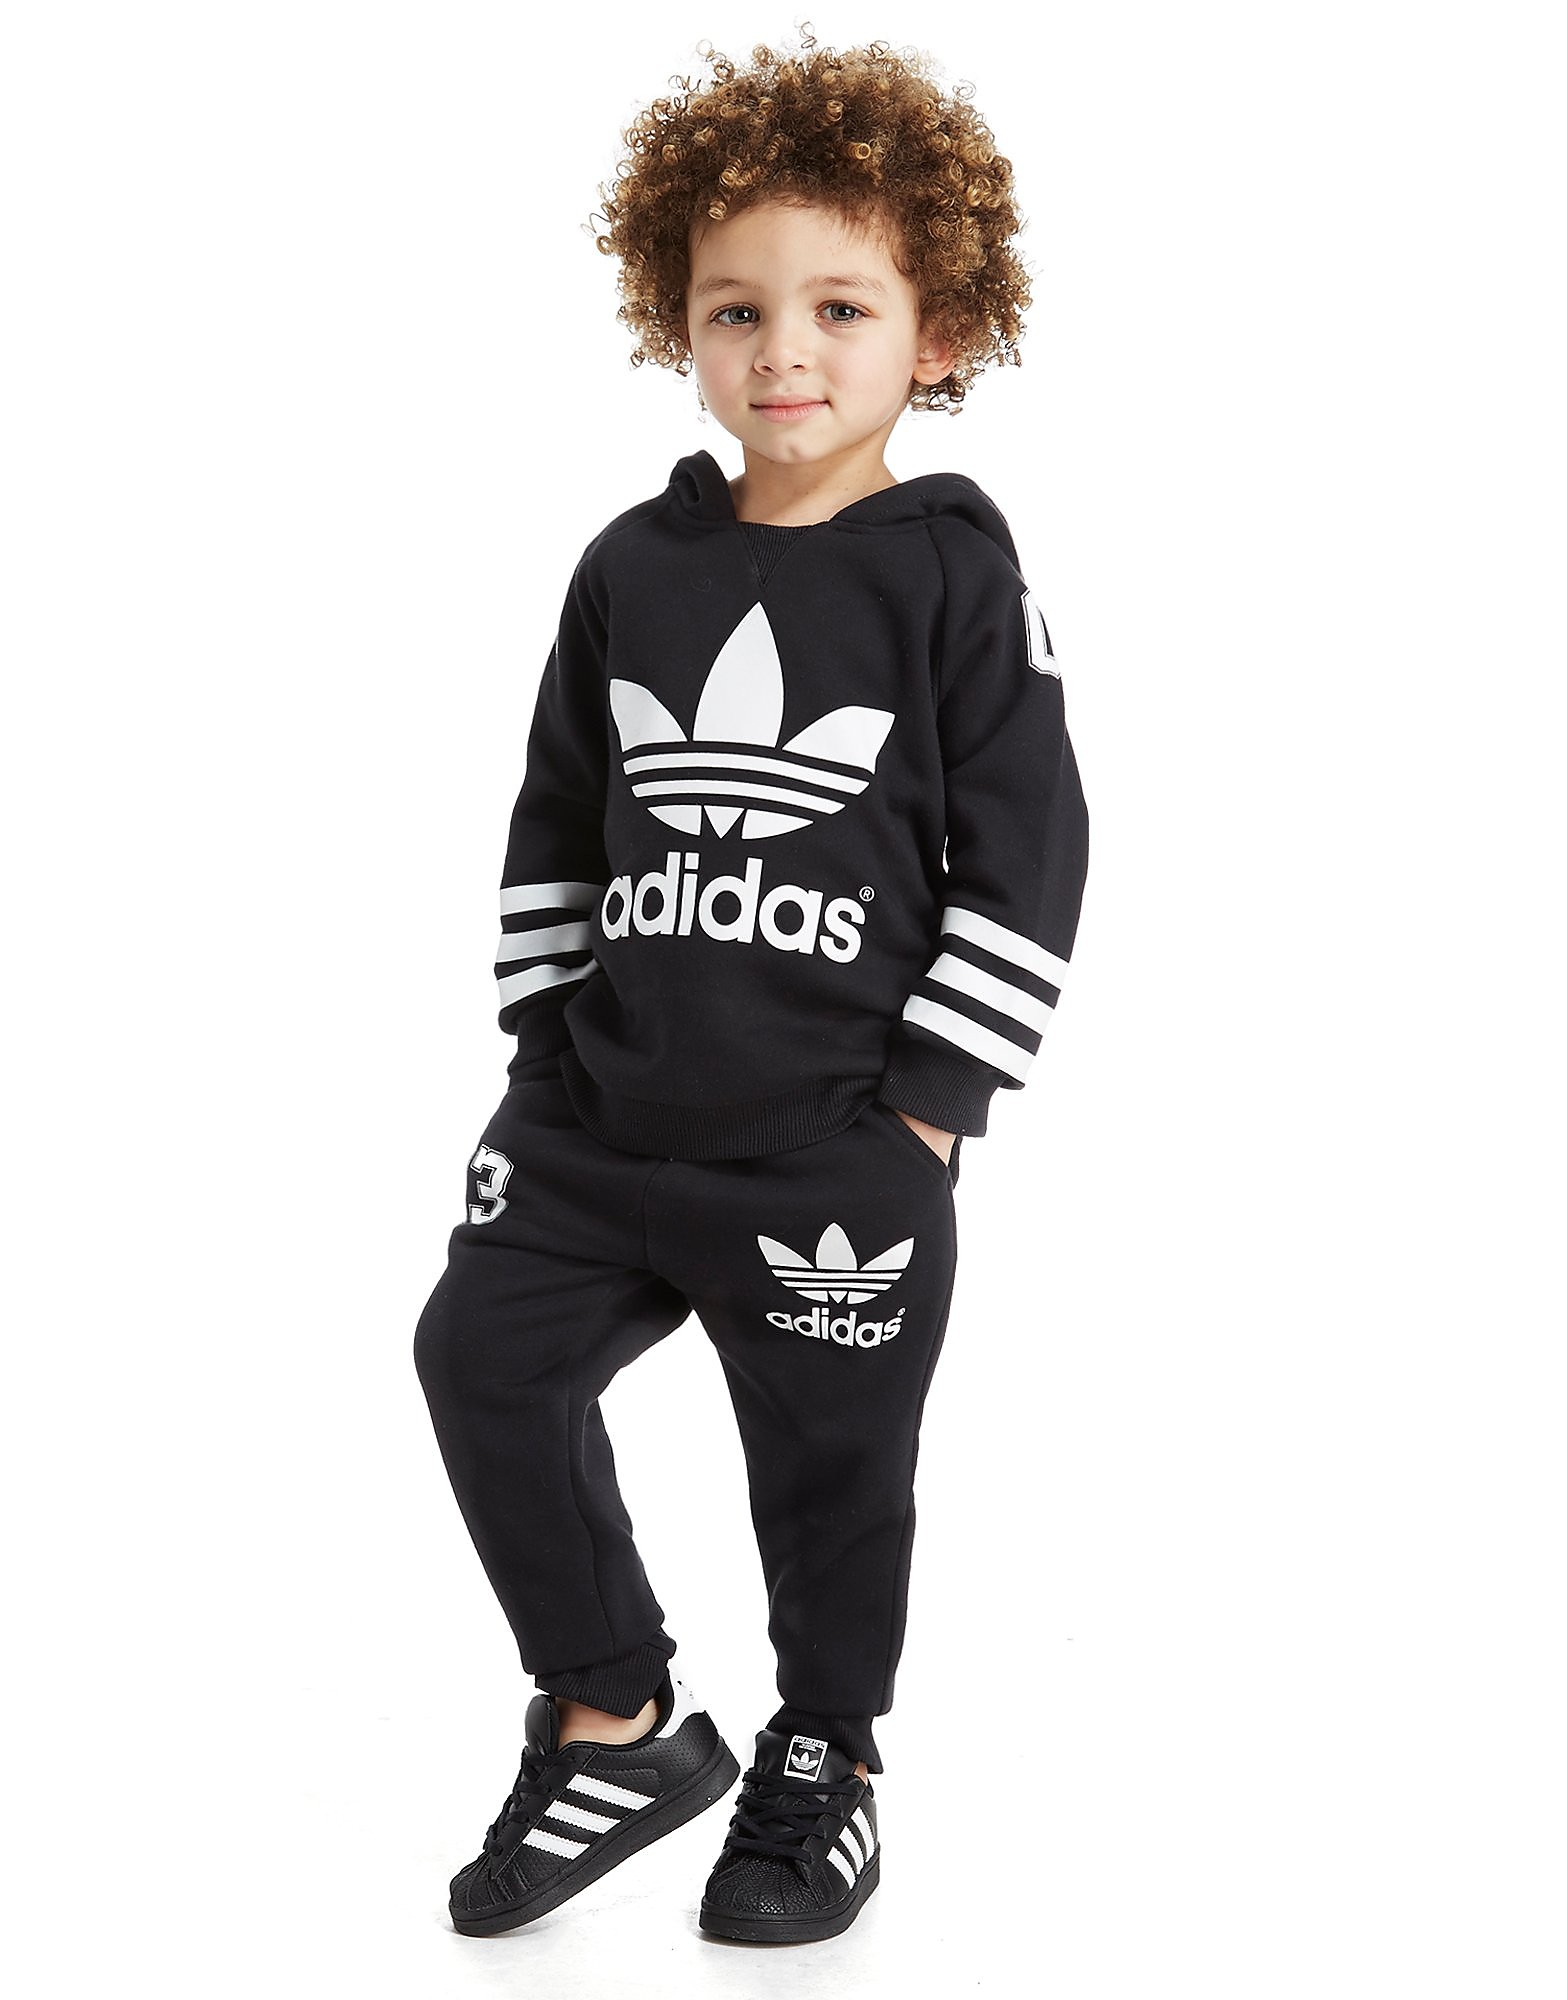 adidas Originals Street Suit Infant